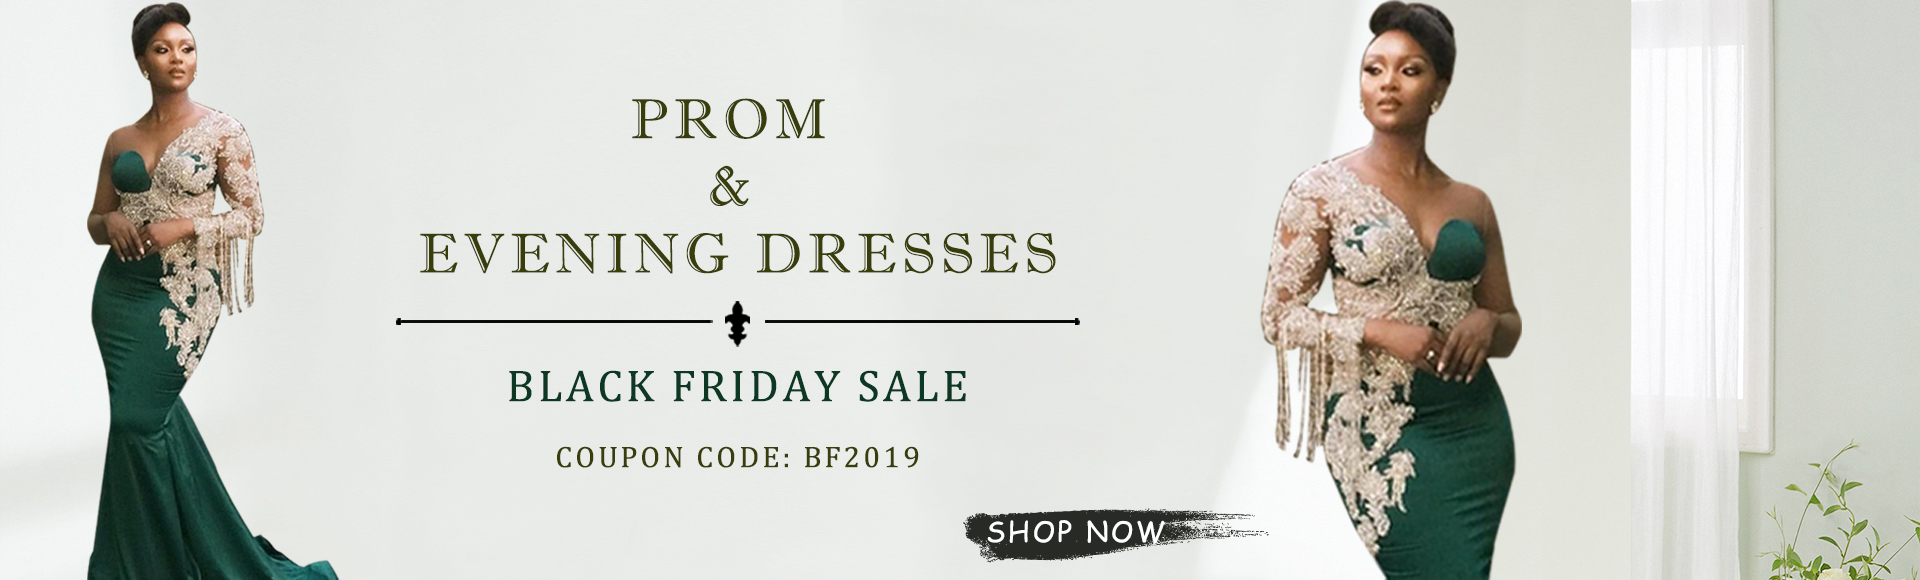 Black Friday Prom Dress Sale